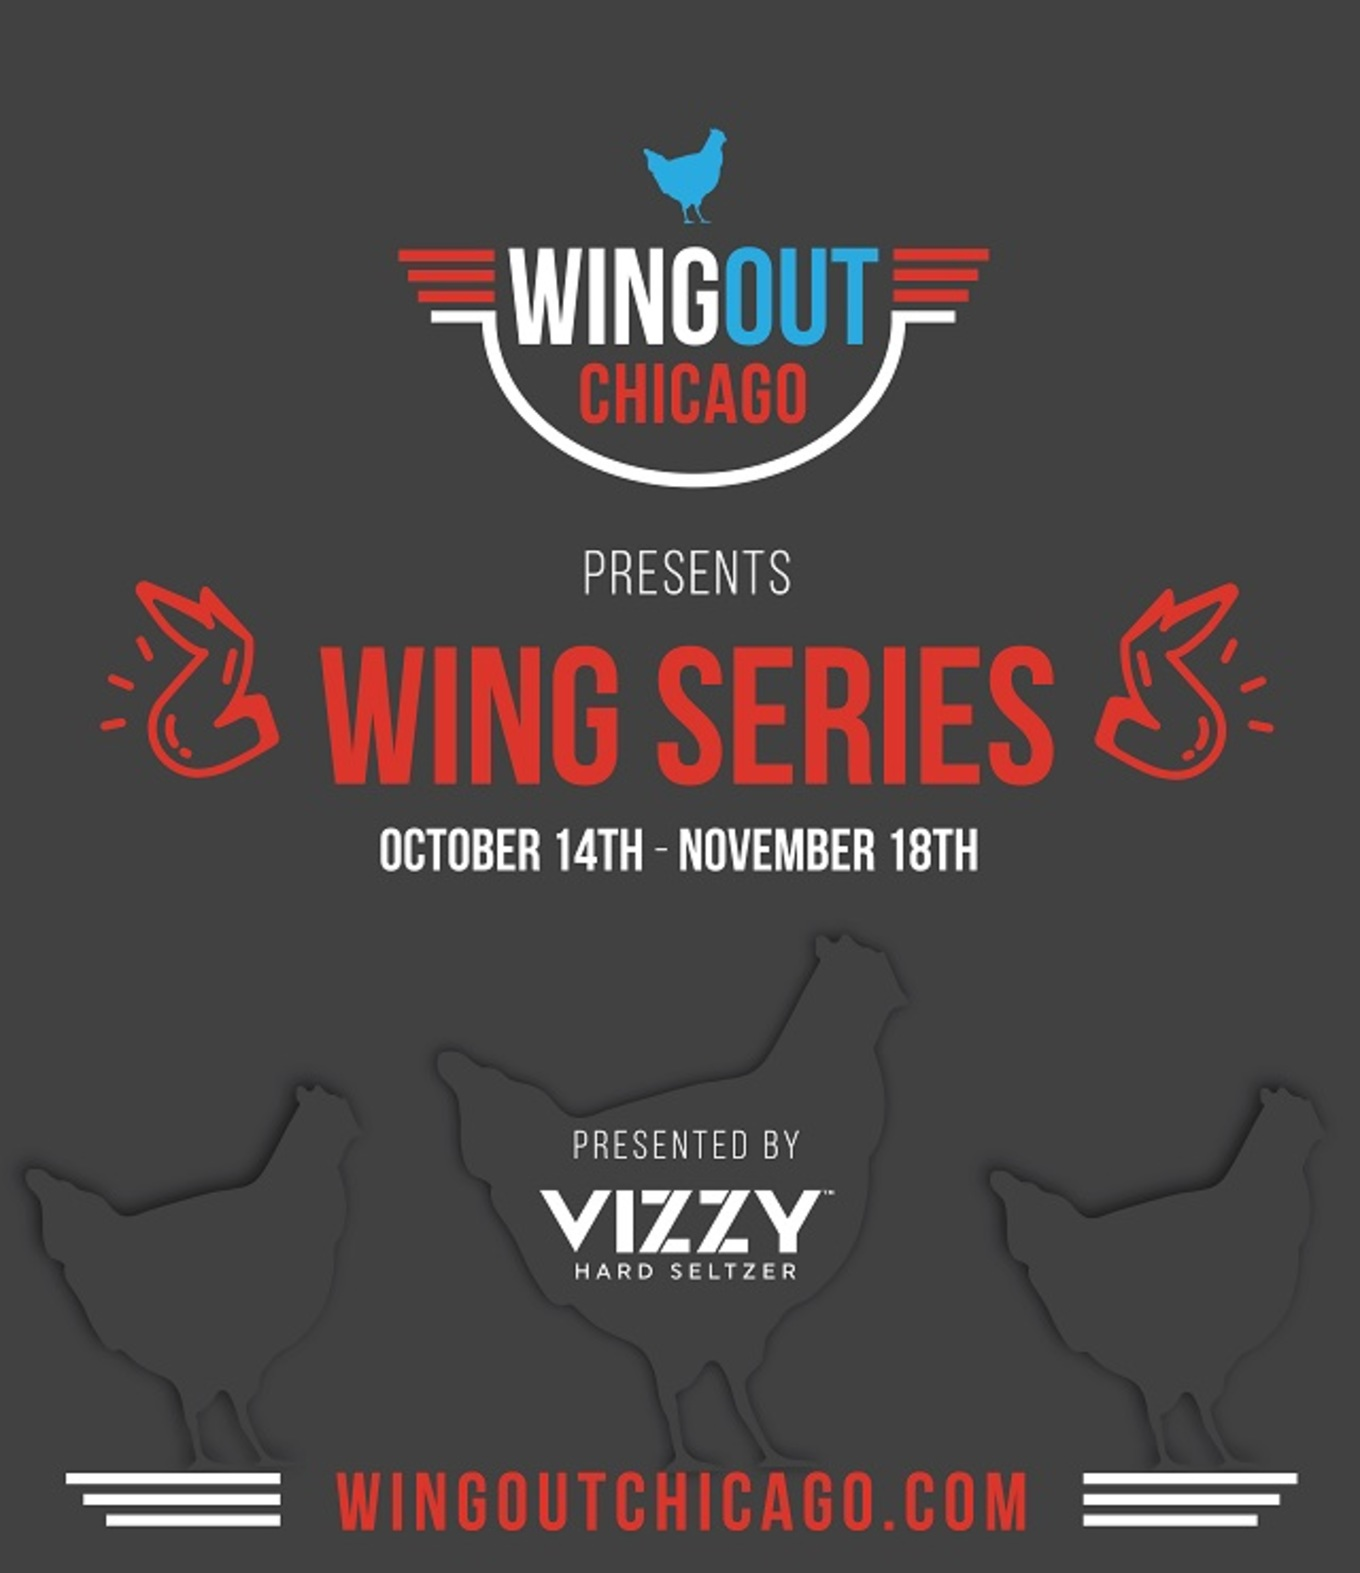 wingout chicago s wing series